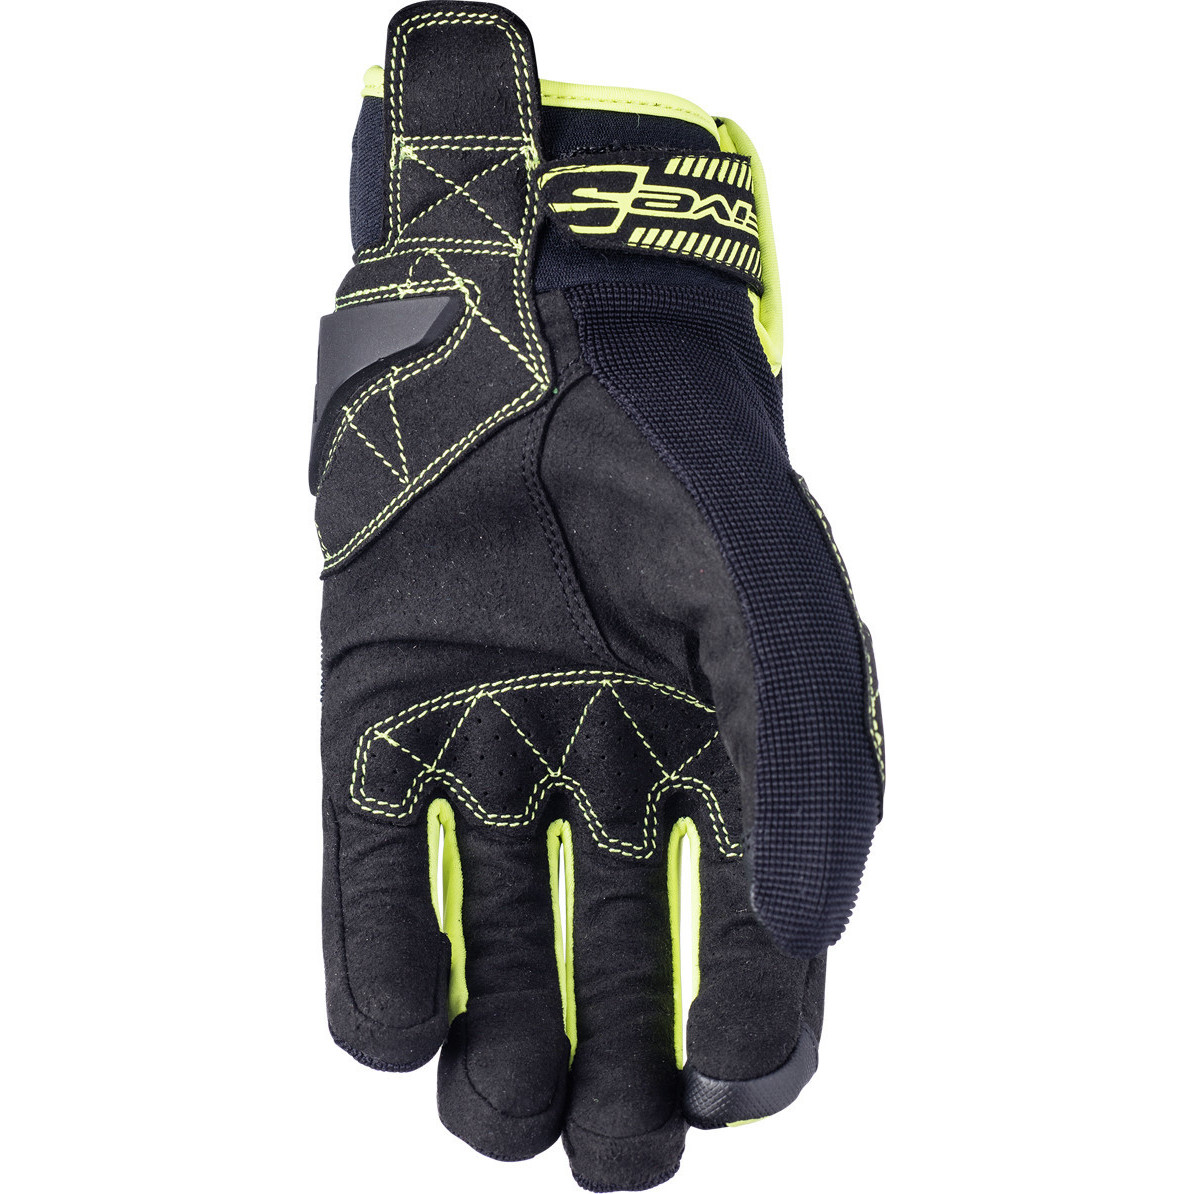 Five-RS3-Motorcycle-Gloves-Motorbike-Bike-Armour-Urban-Touch-Screen-GhostBikes thumbnail 10